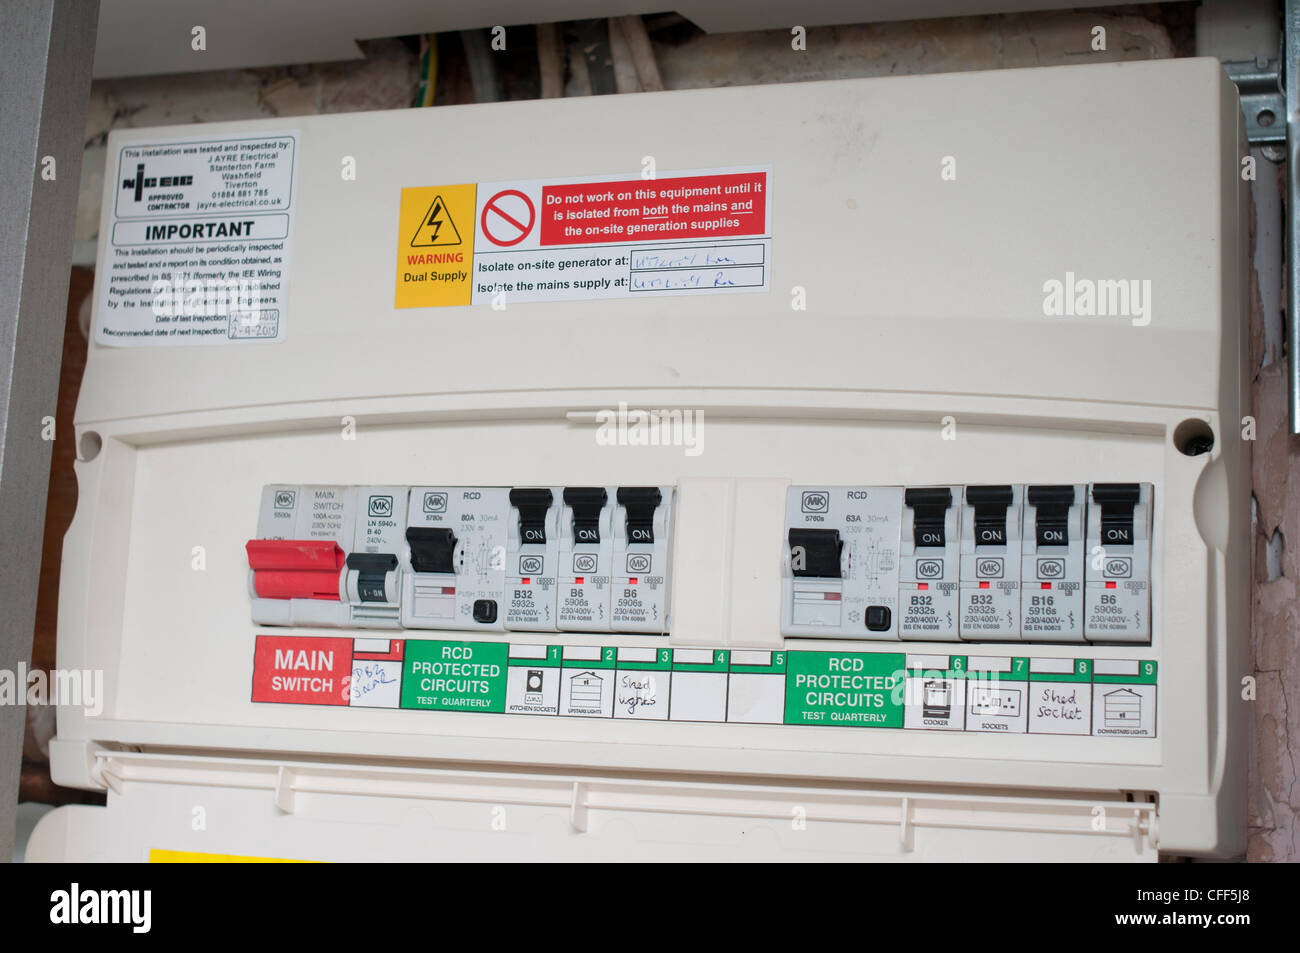 Household Fuse Box Archive Of Automotive Wiring Diagram Old Style Stock Photos Images Rh Alamy Com House